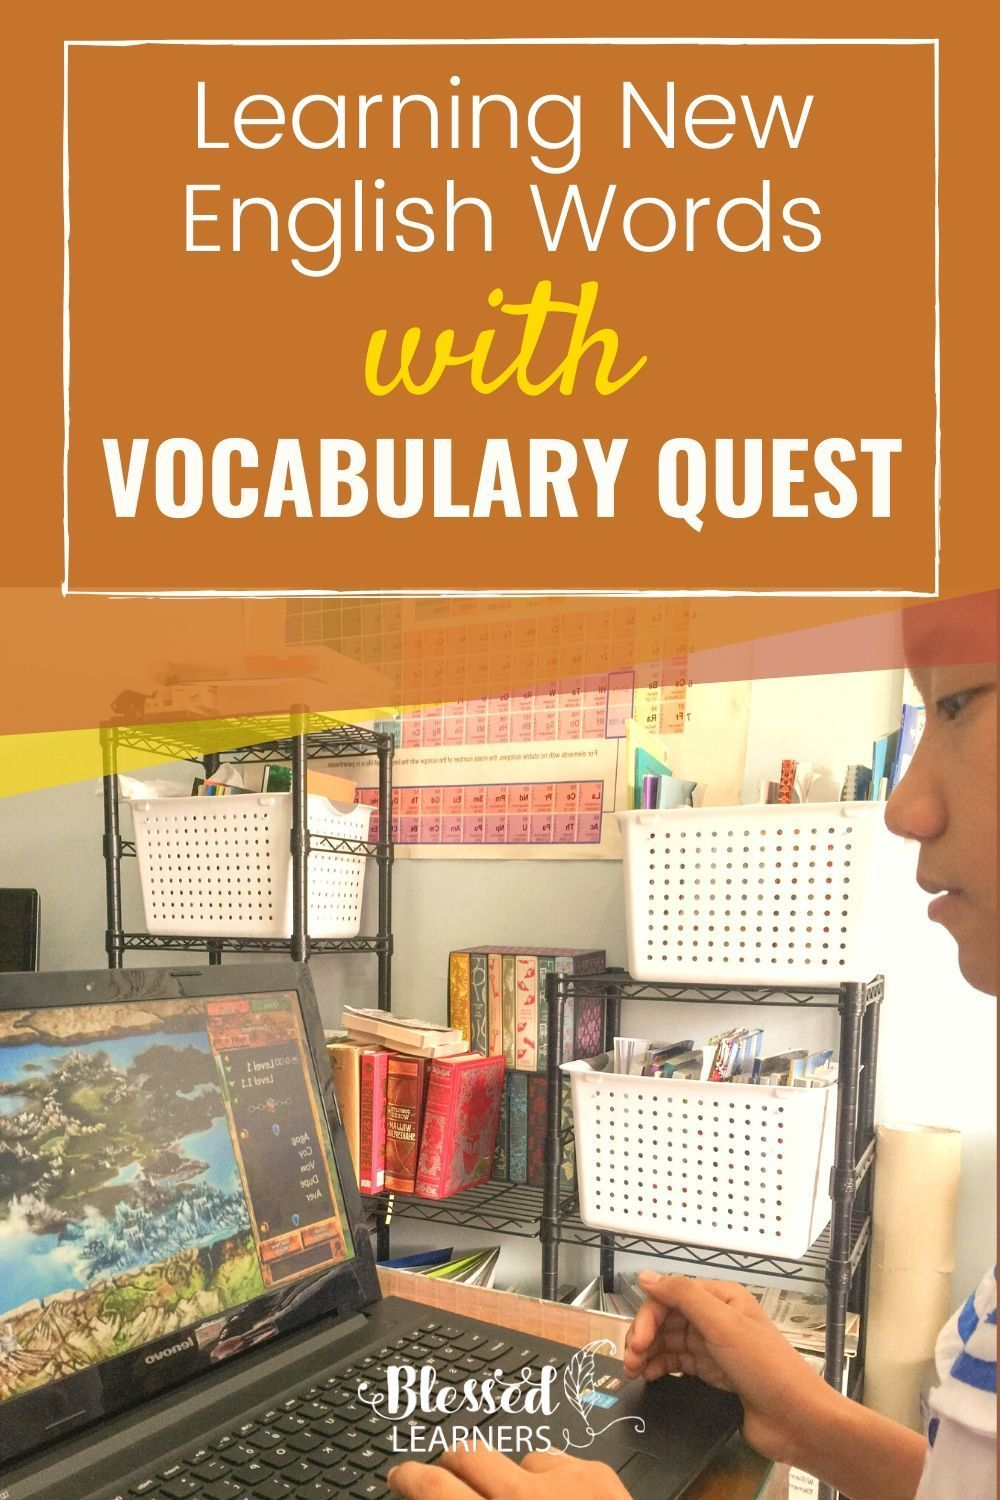 English Vocabulary Program for Middle School, Vocabulary